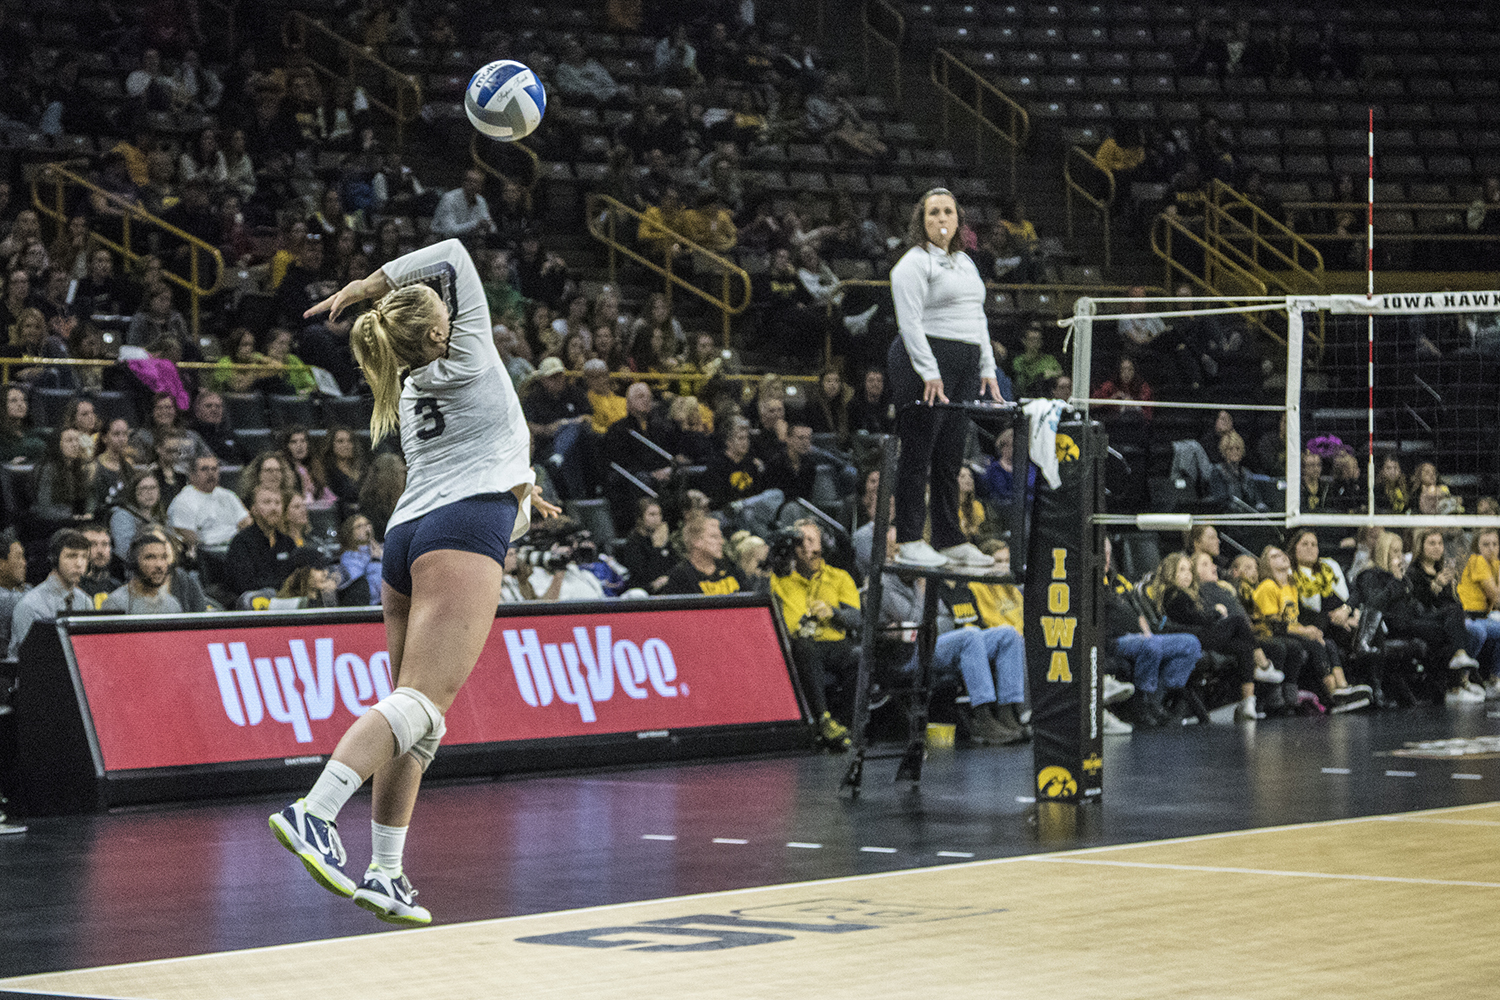 Penn+State+junior+Kendall+White+serves+during+a+volleyball+match+between+Iowa+and+Penn+State+at+Carver-Hawkeye+Arena+on+Saturday%2C+Nov.+3%2C+2018.+The+Hawkeyes+were+shut+out+by+the+Nittany+Lions%2C+3-0.